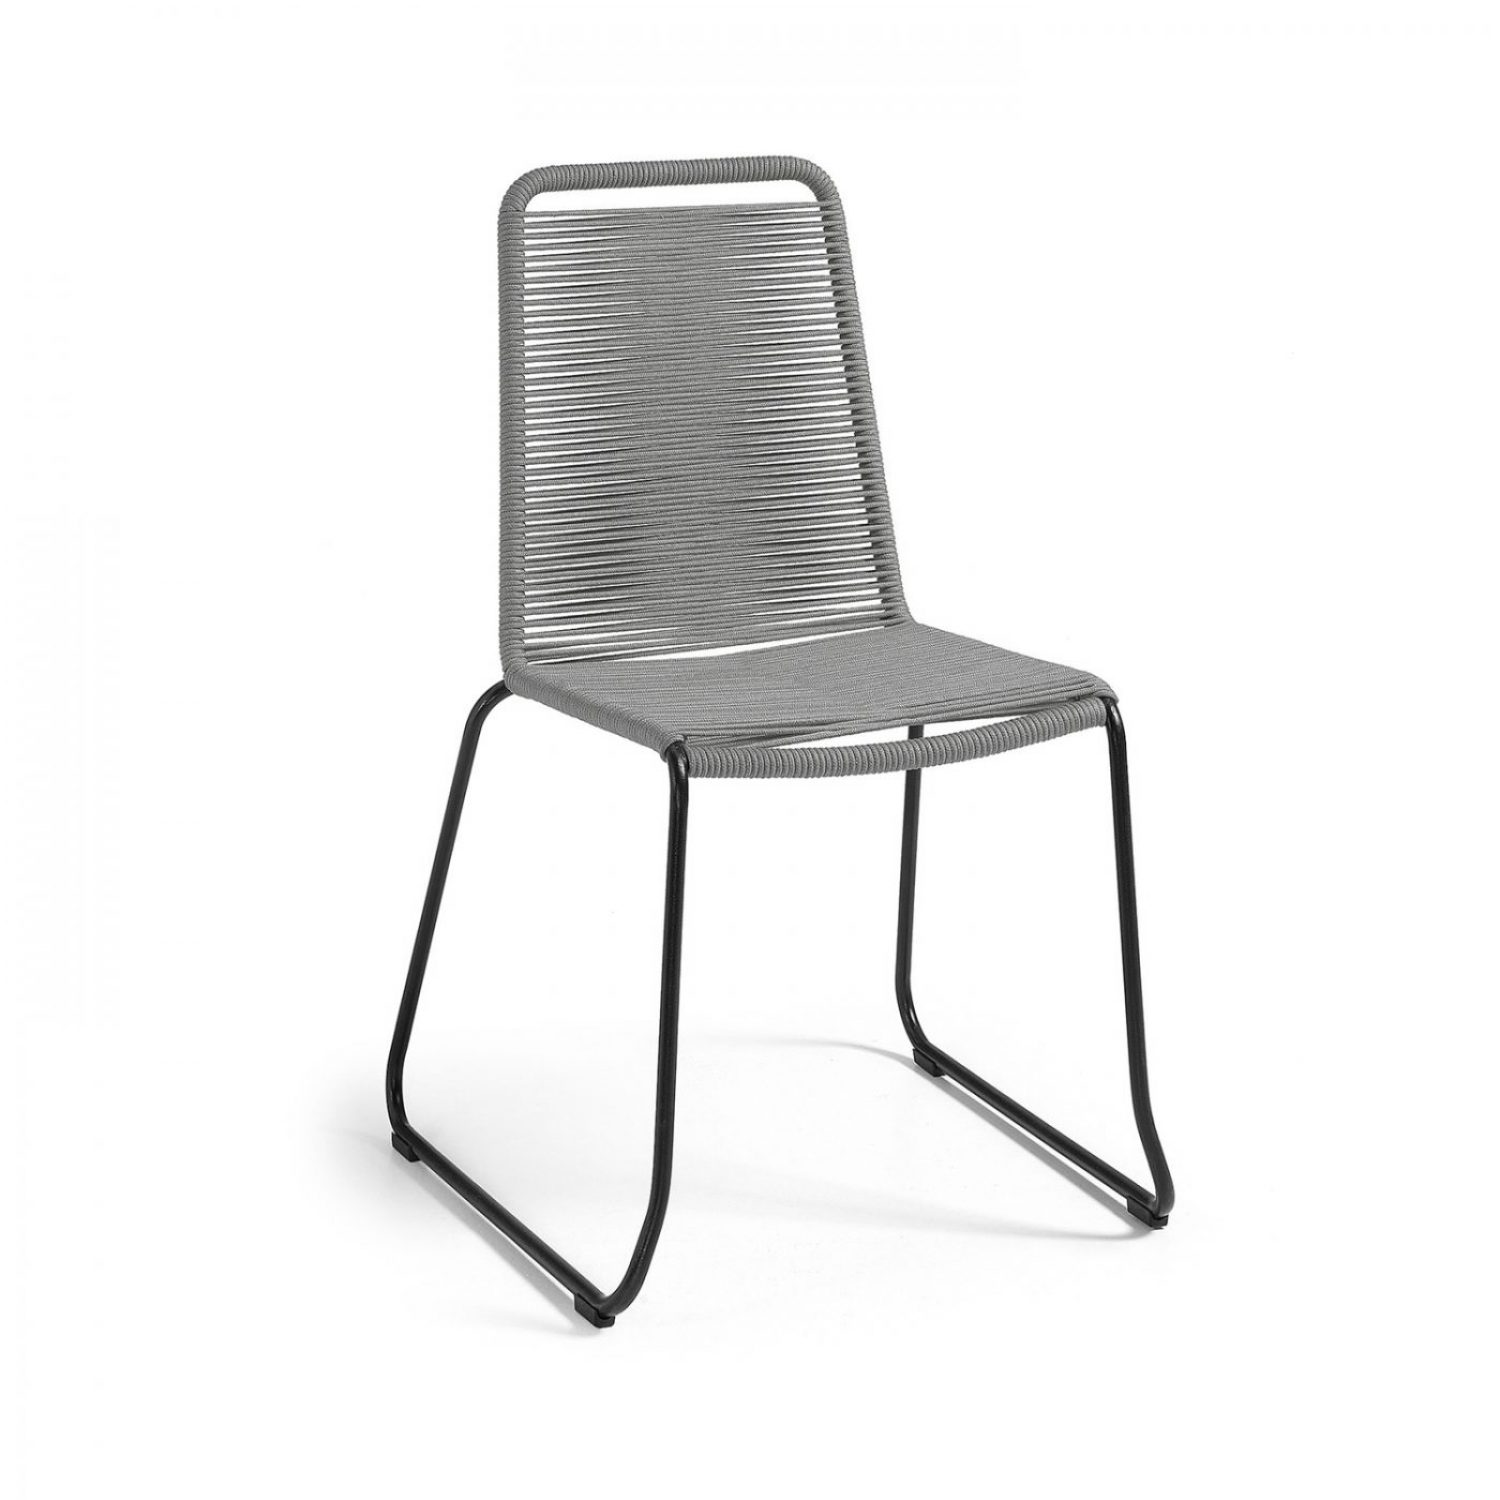 Meagan Dining Chair - Grey